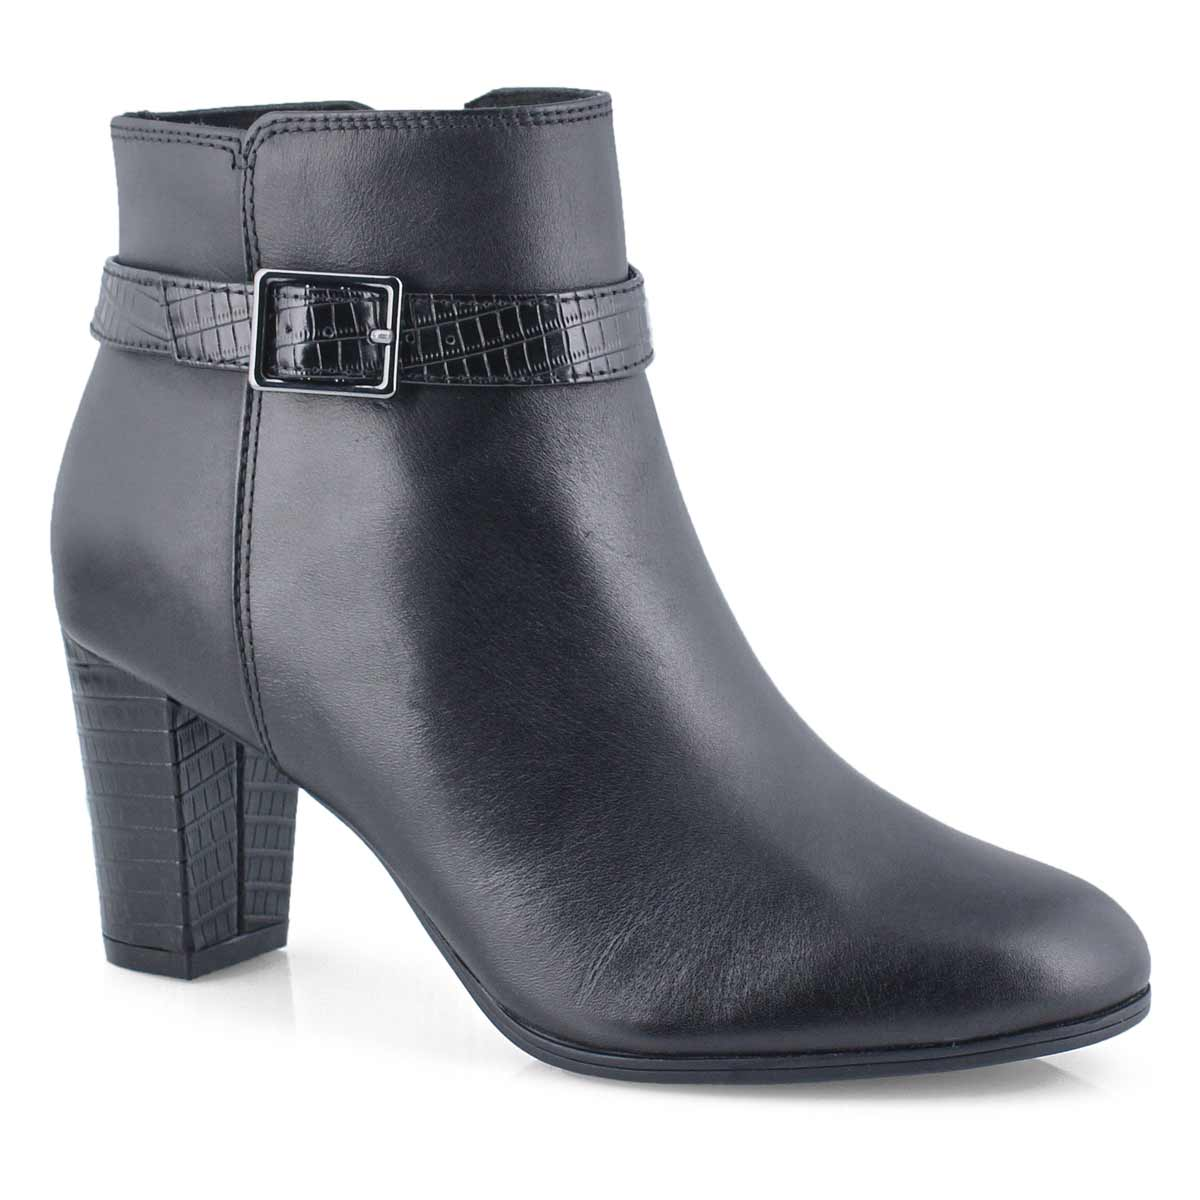 Lds Alayna Juno black ankle boot